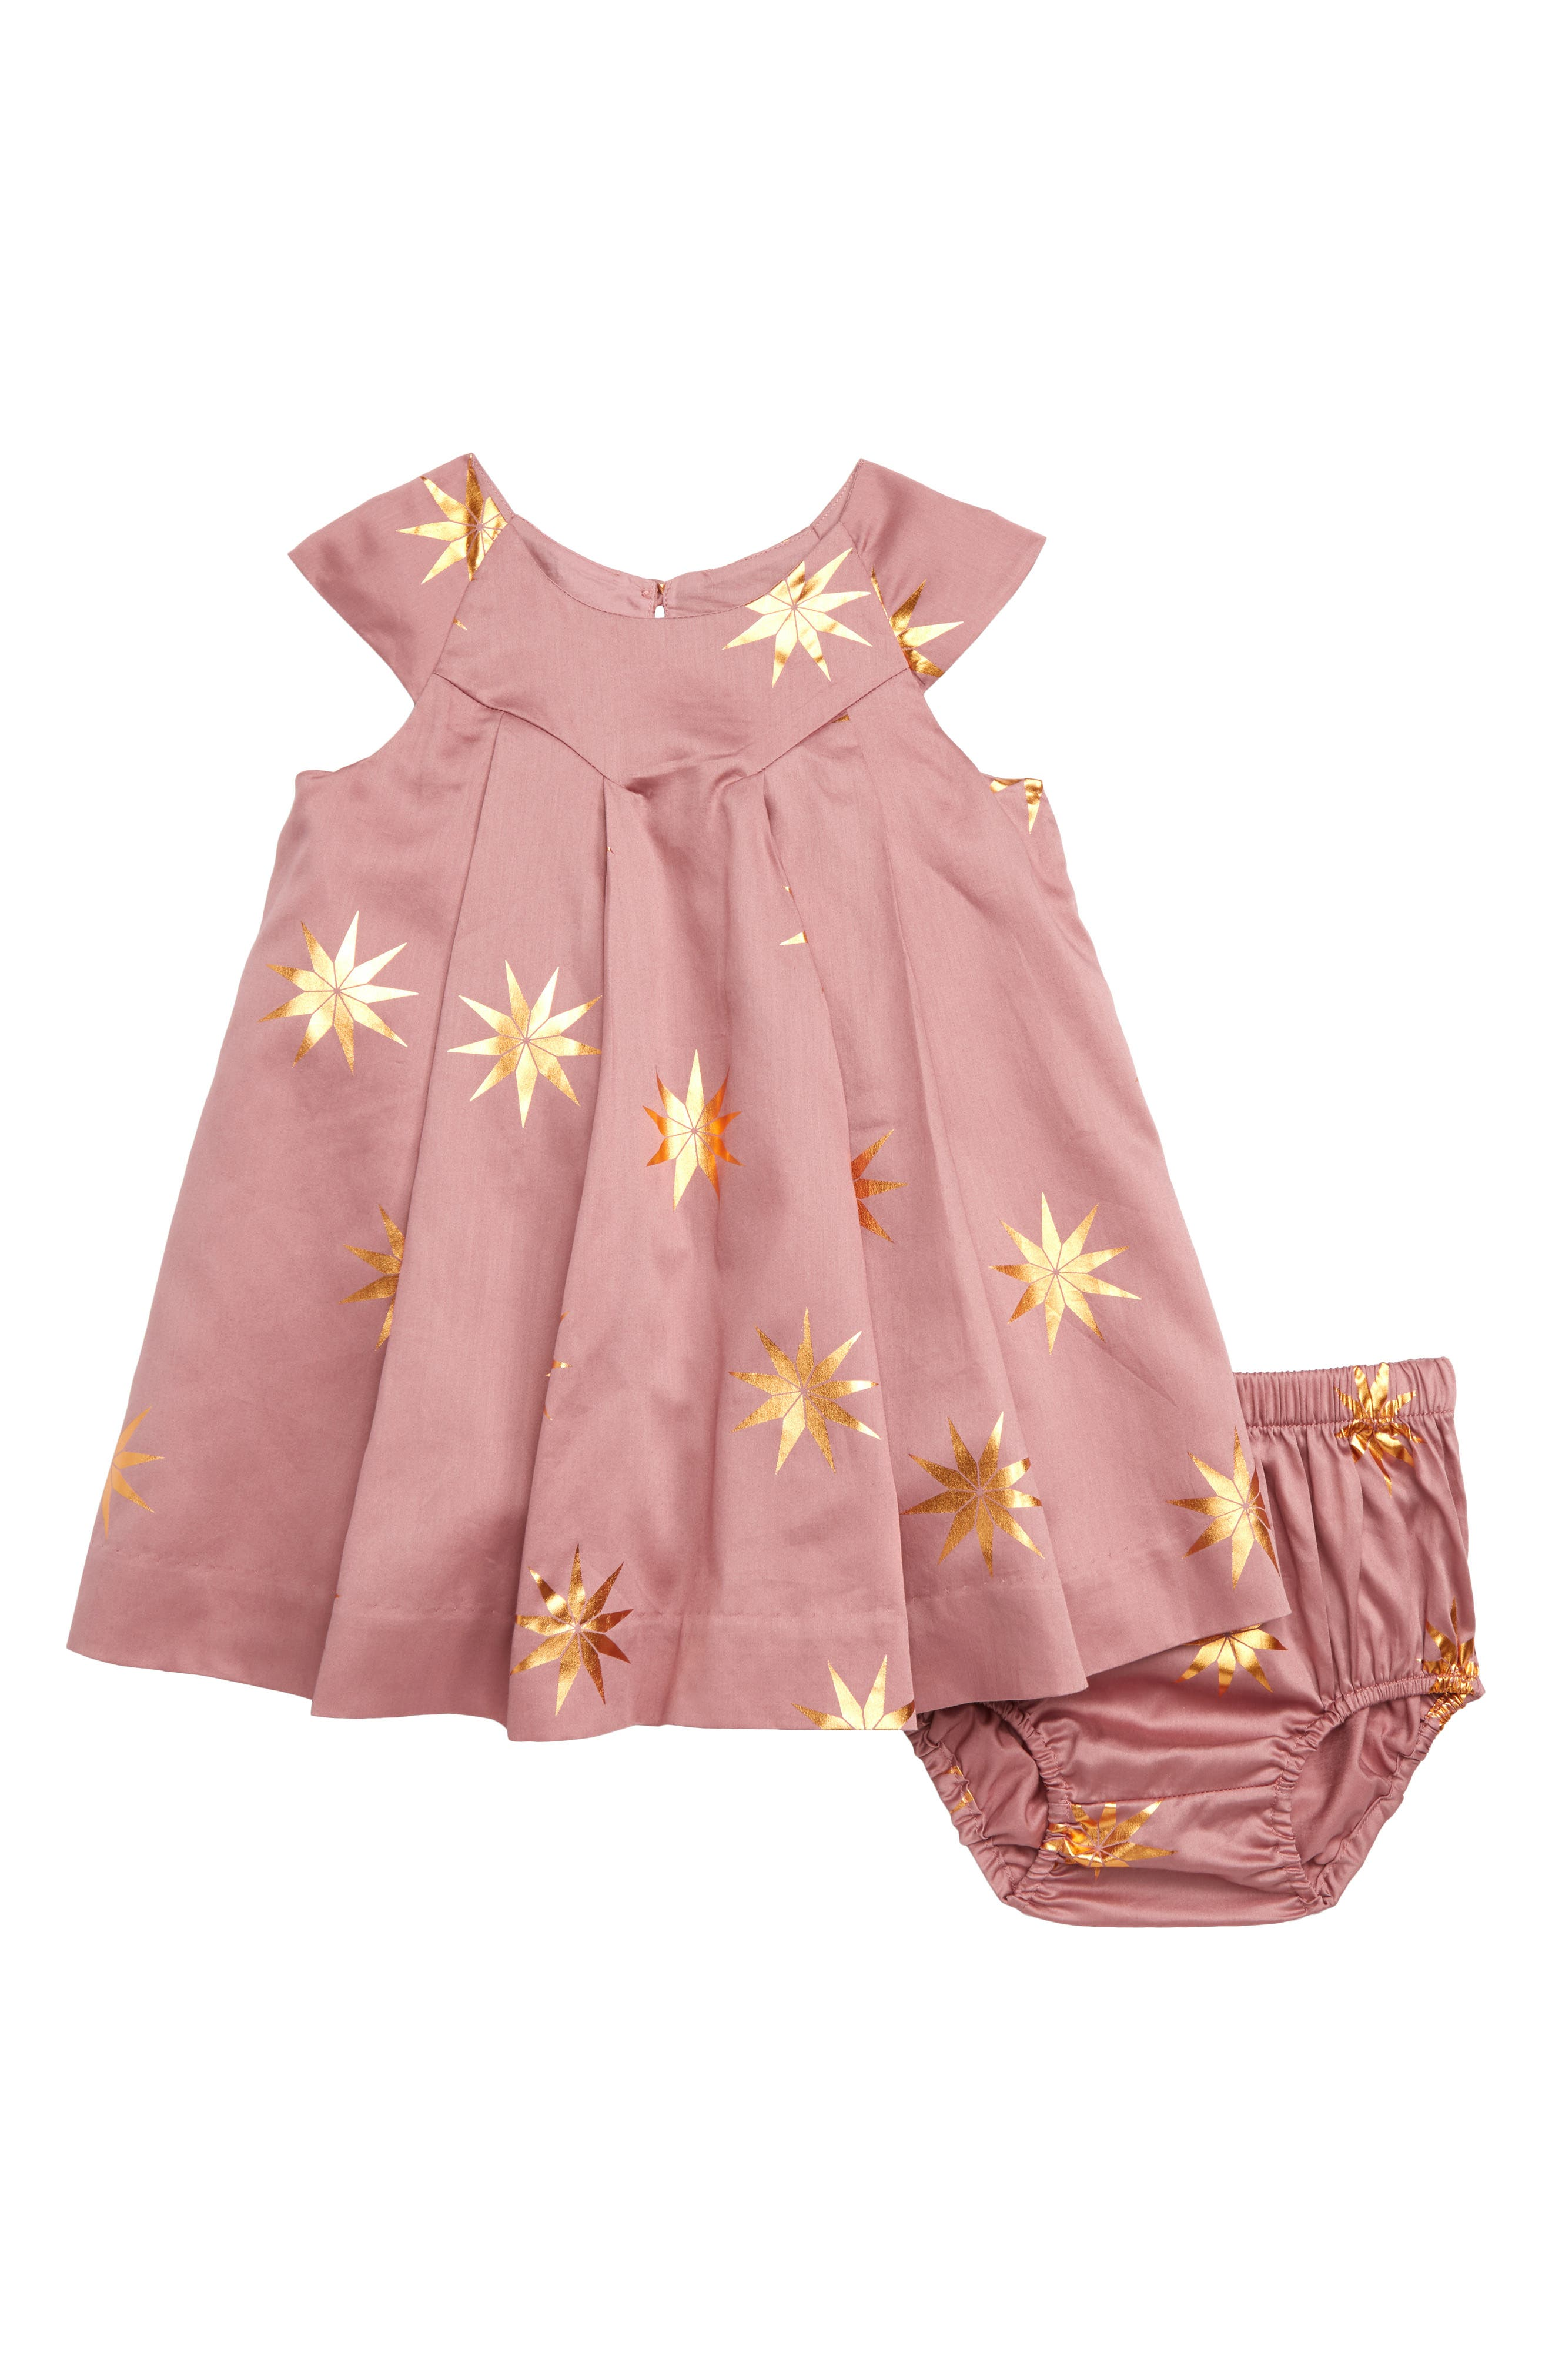 Infant Girls Tea Collection Patterned Dress Size 1824M  Pink